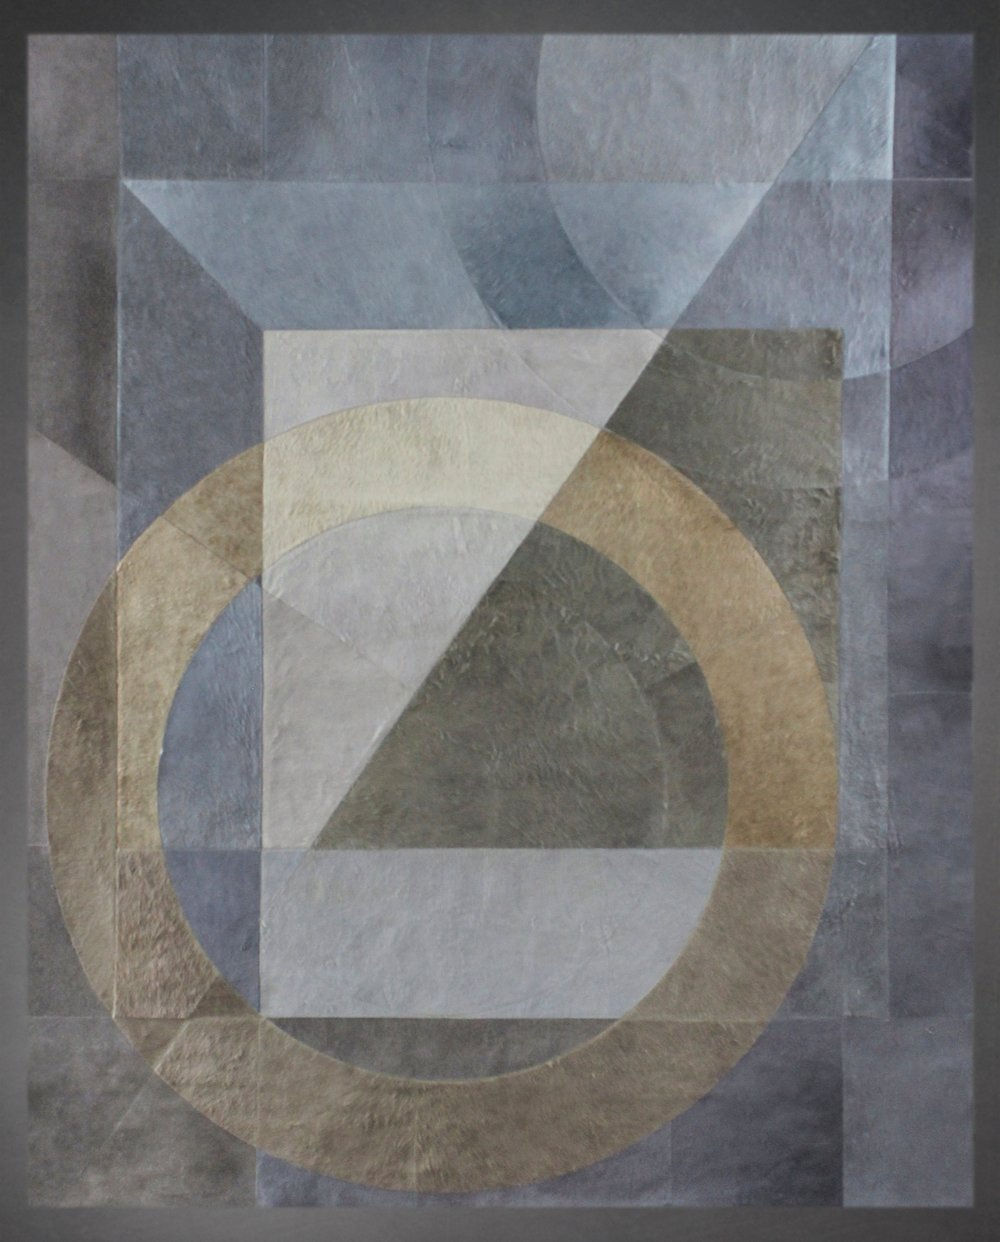 Contemporary designed fur rug in the Cubist style by Yerra in storm, gold, and gray.